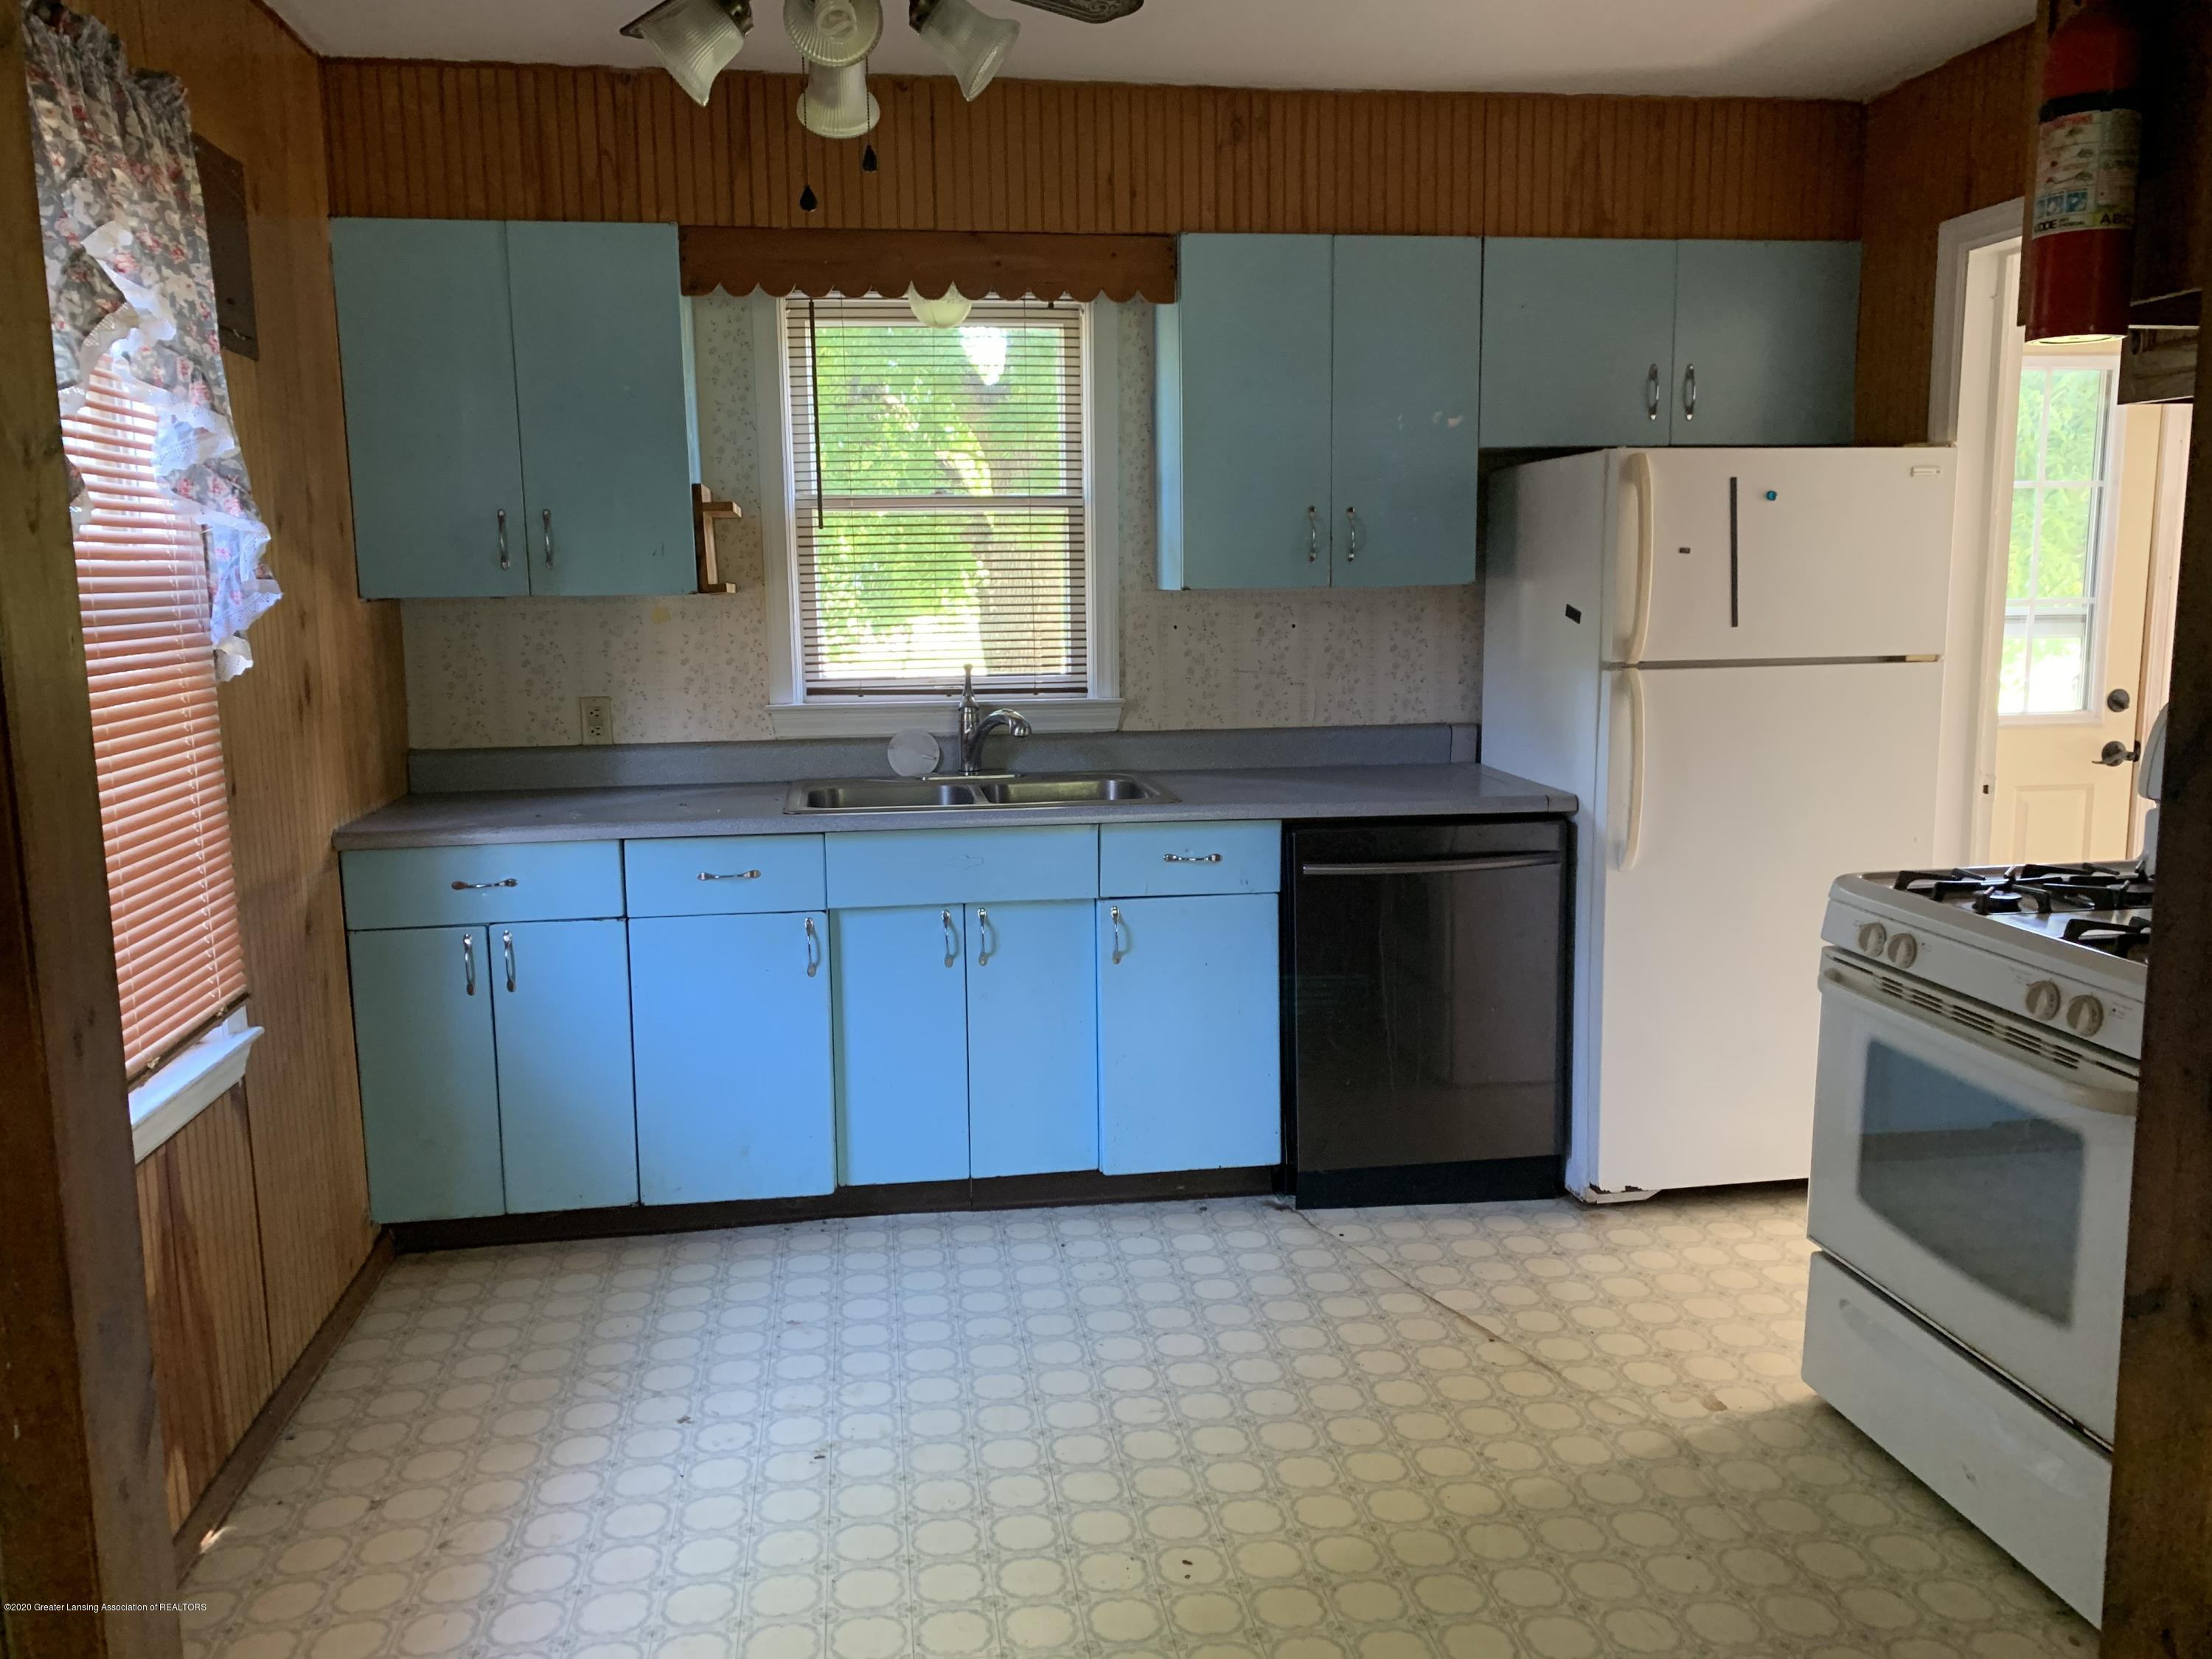 941 Varden Dr - Kitchen 2 - 4